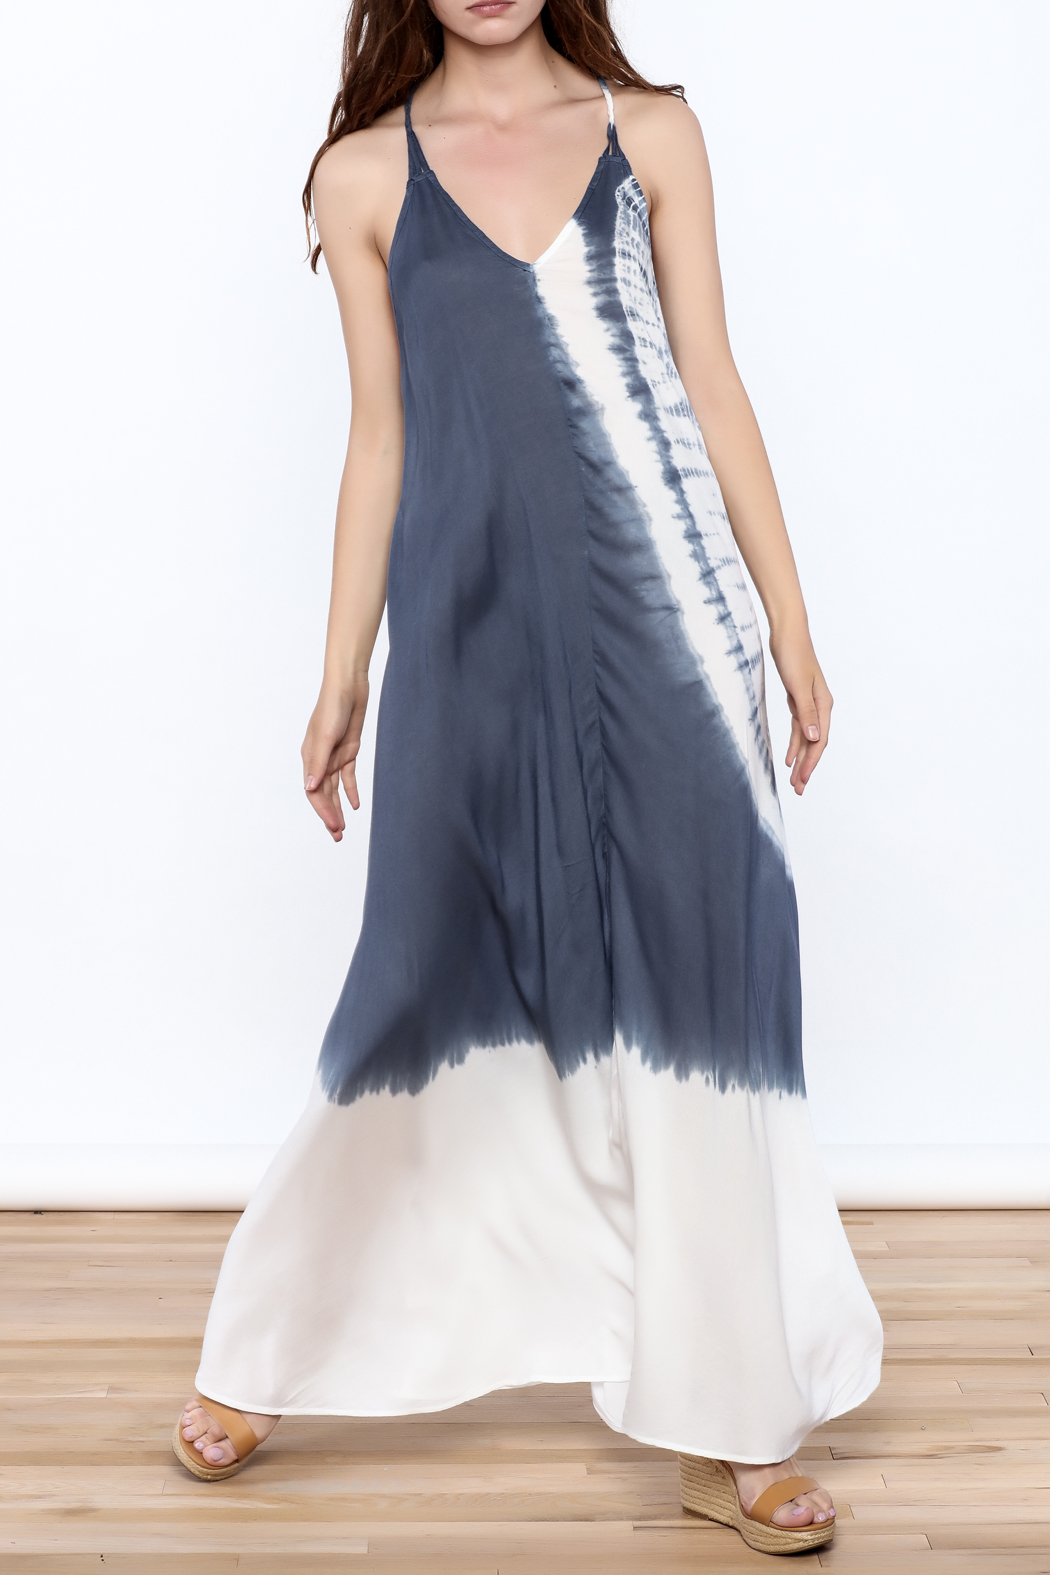 Elan Beaded Maxi Dress - Main Image